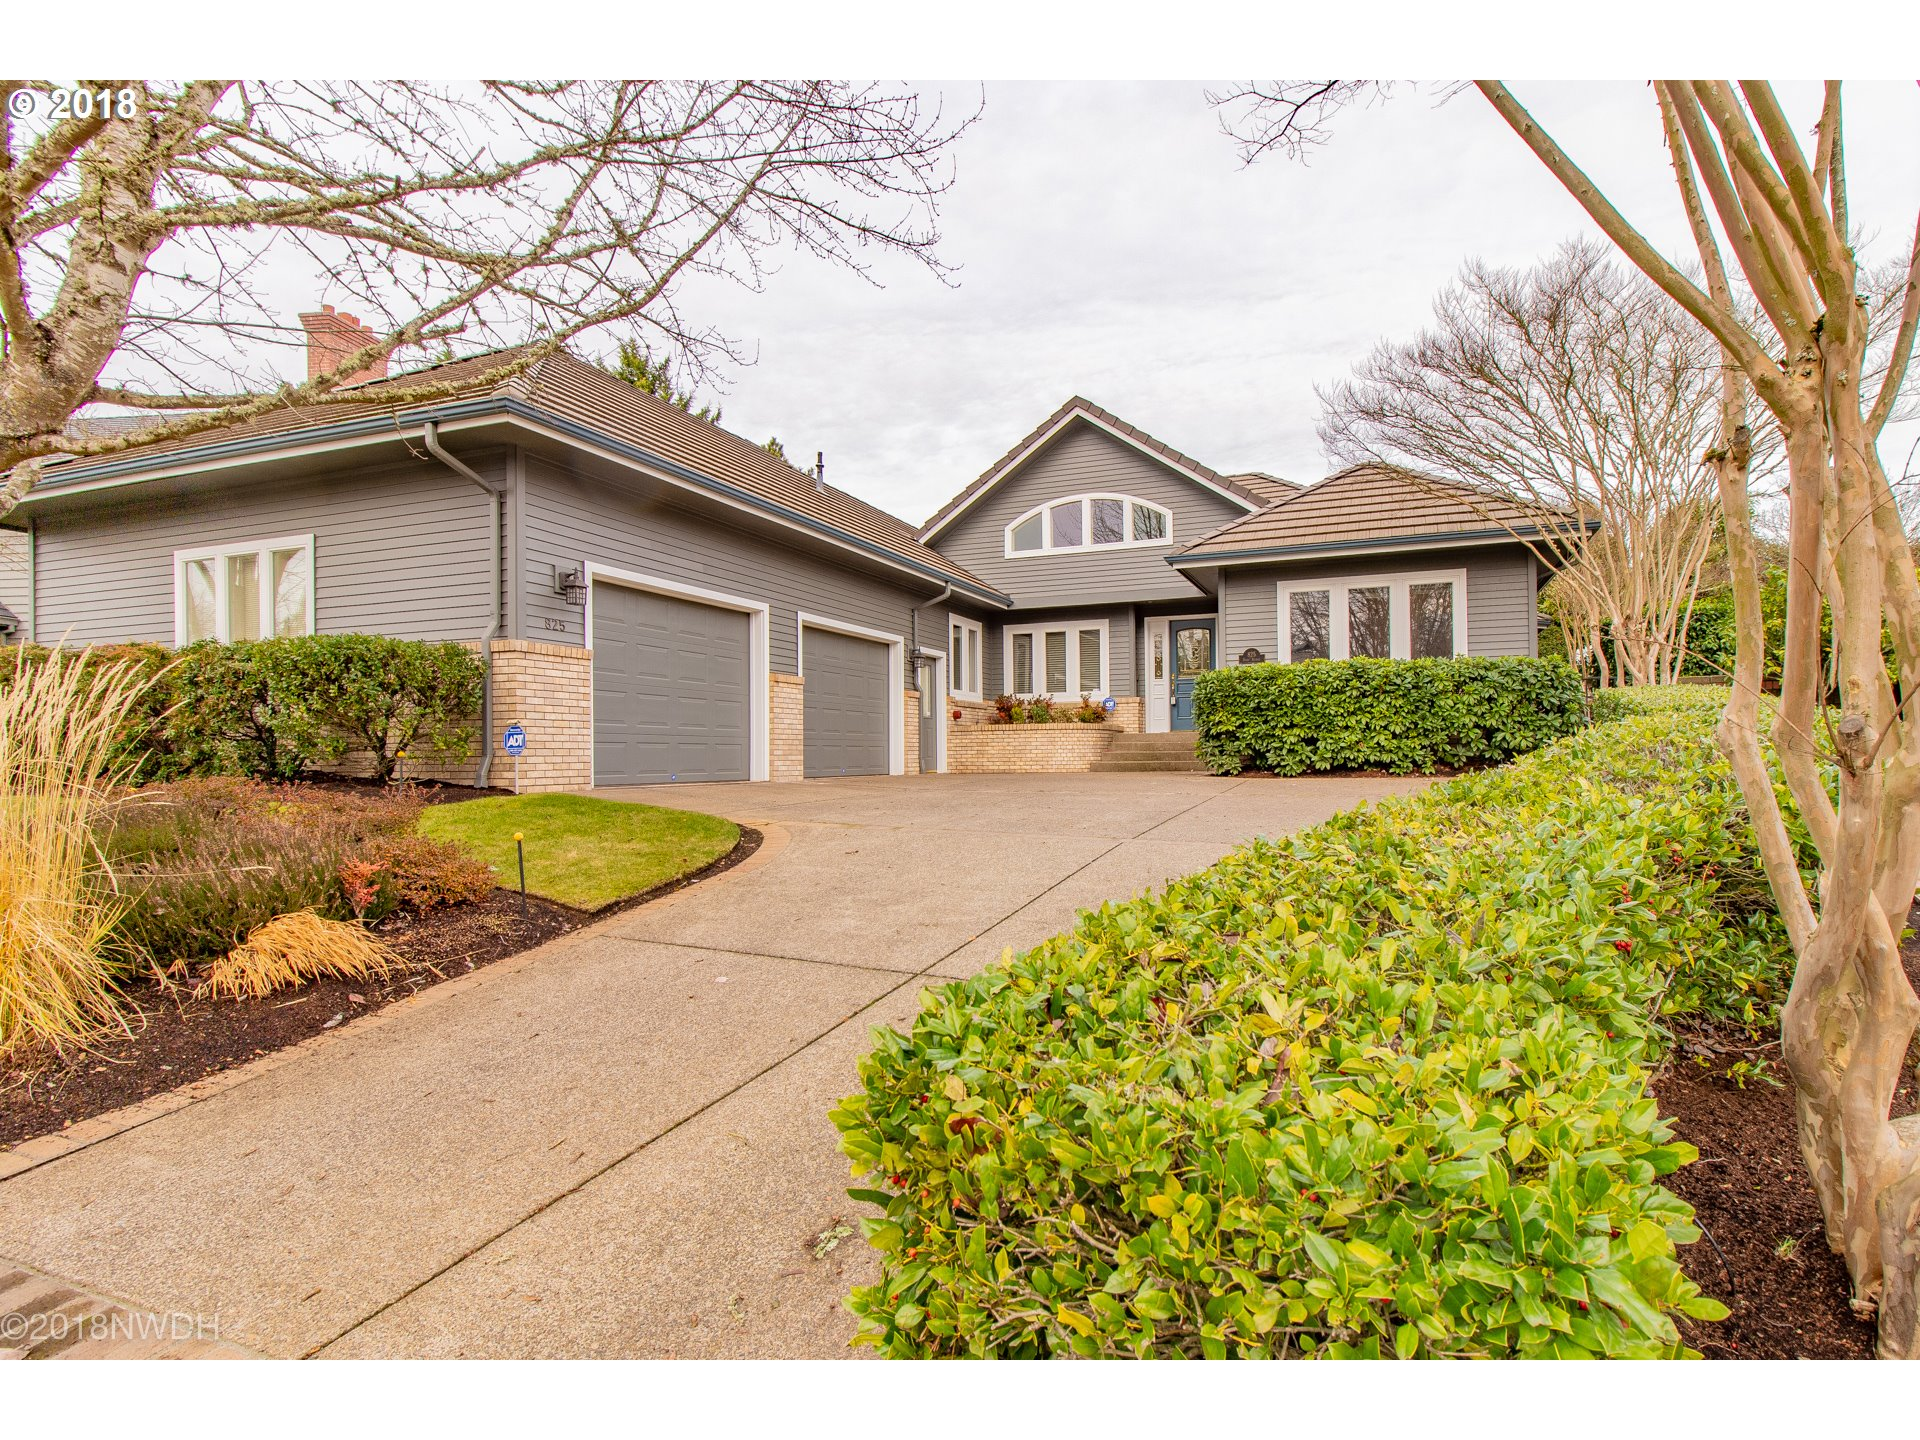 825 SAND AVE Eugene Home Listings - Galand Haas Real Estate